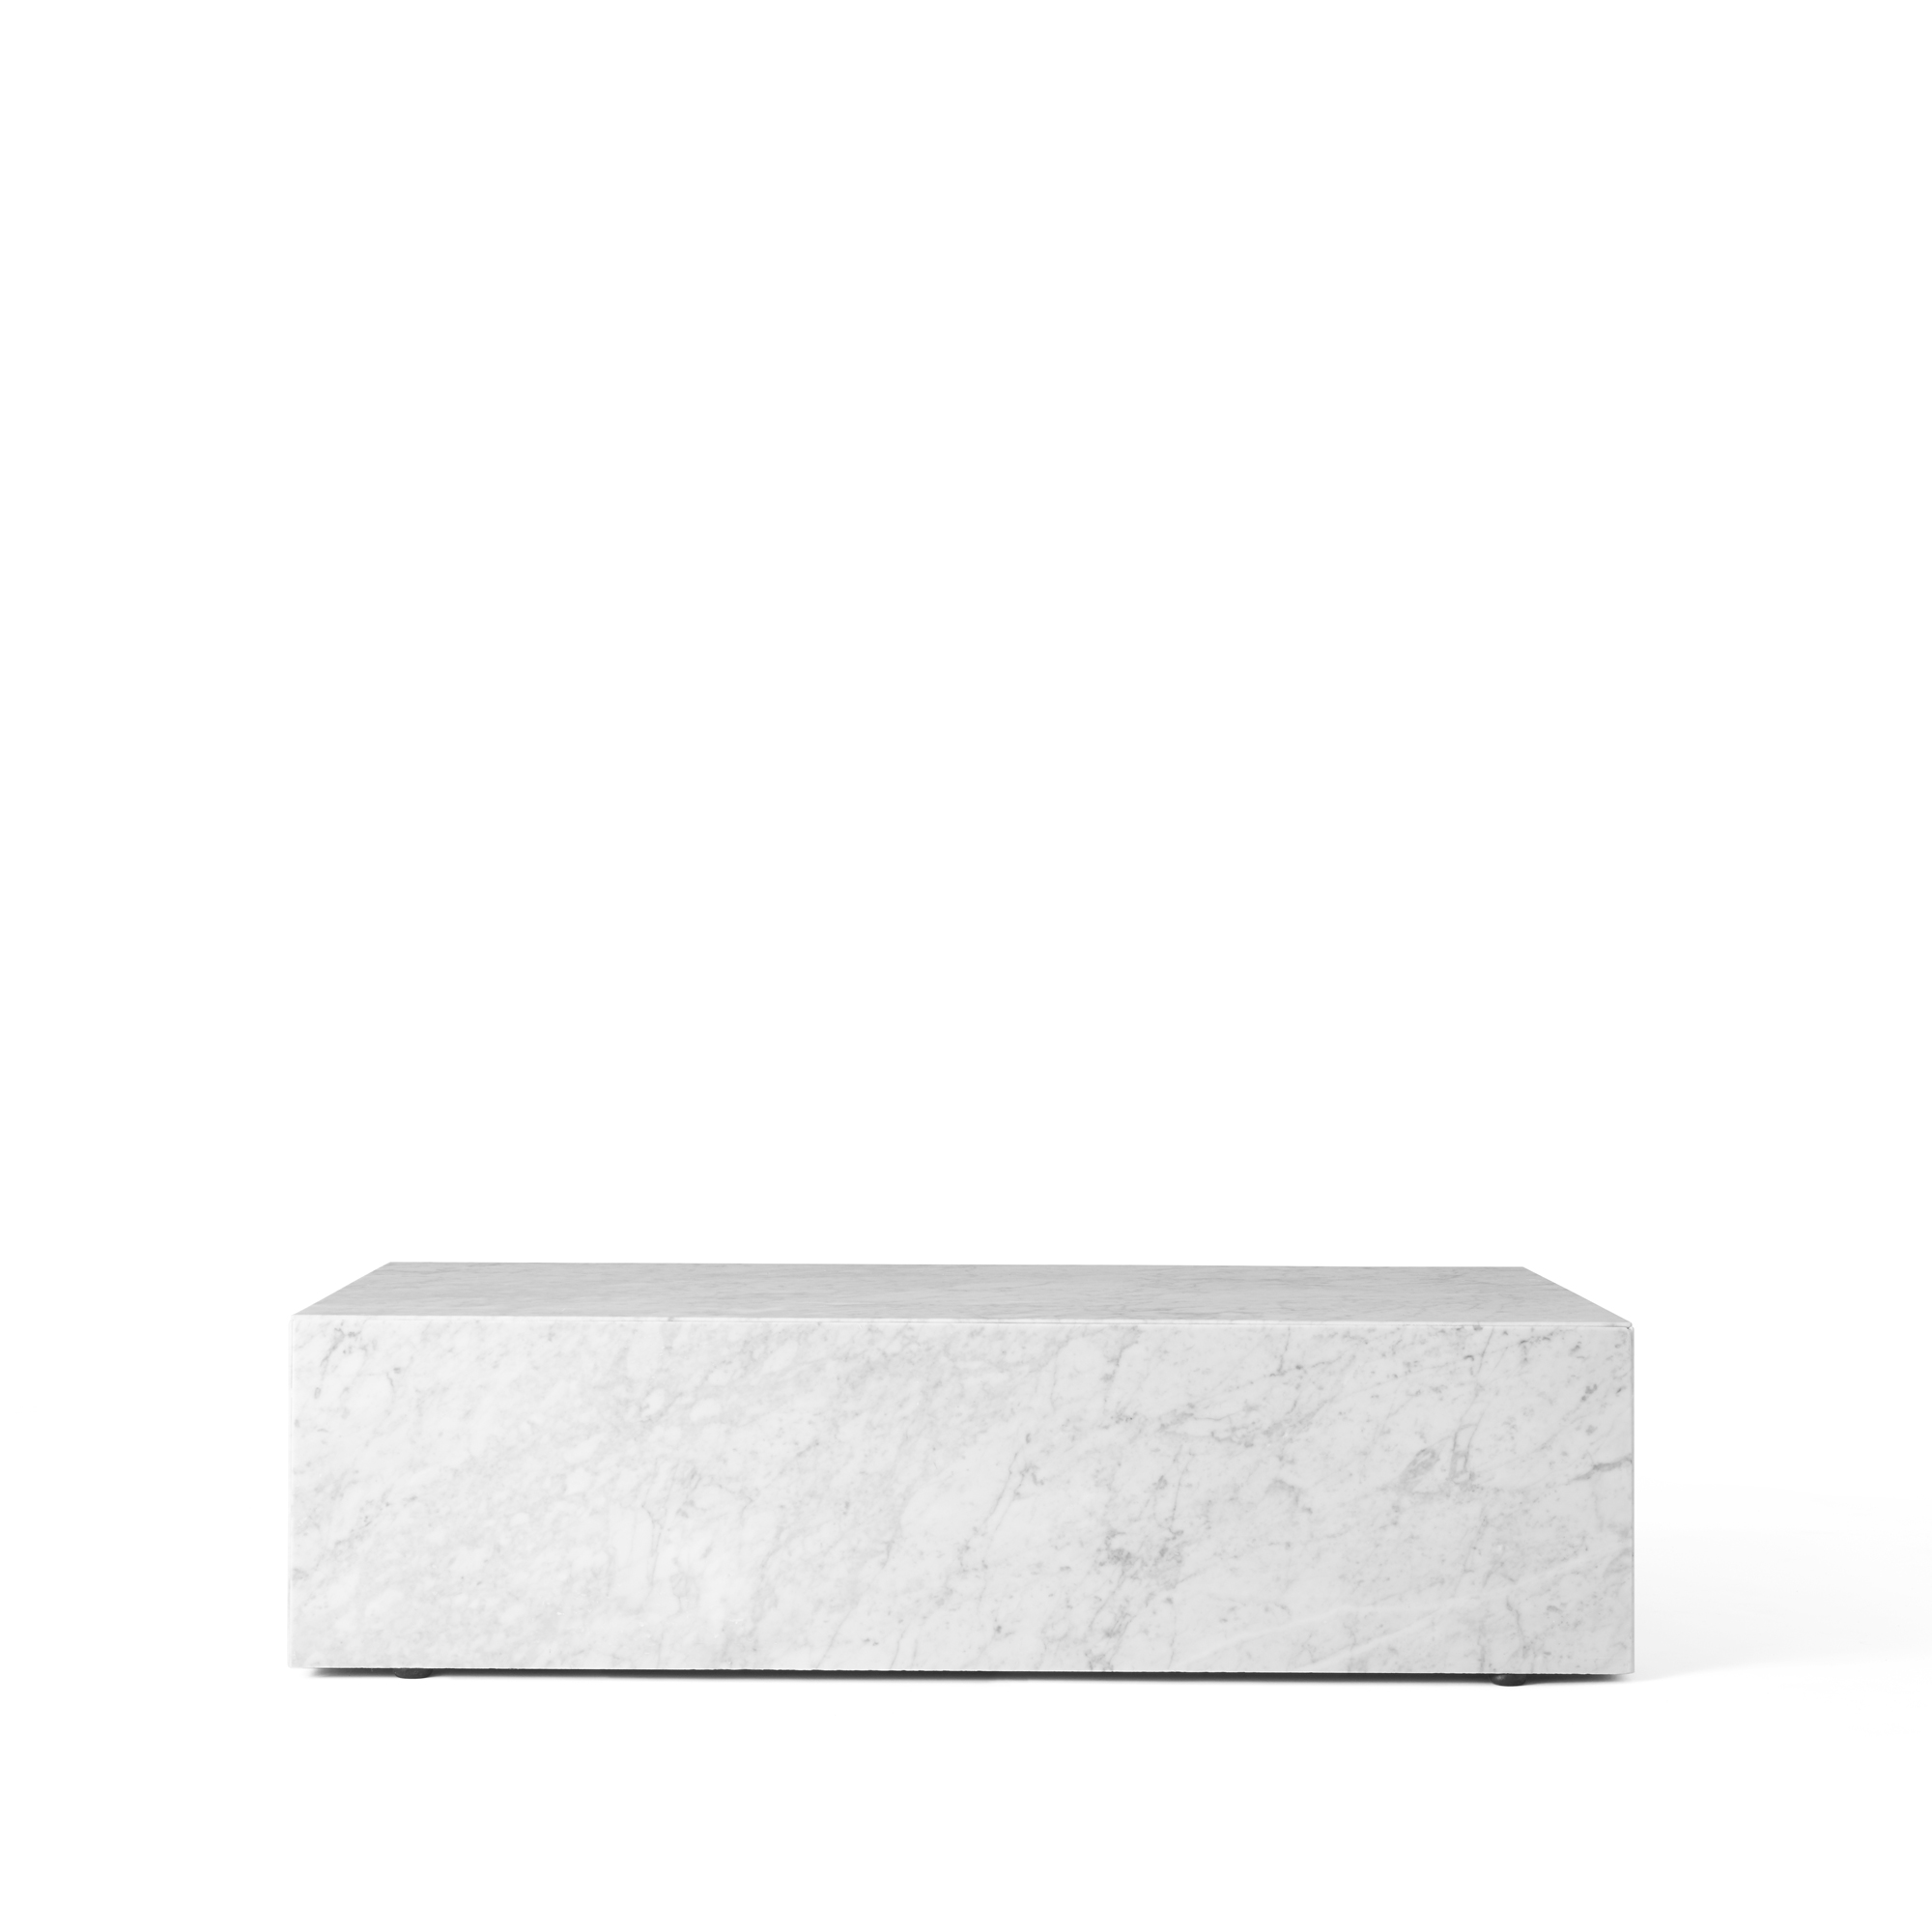 Bild av Plinth soffbord - white, low